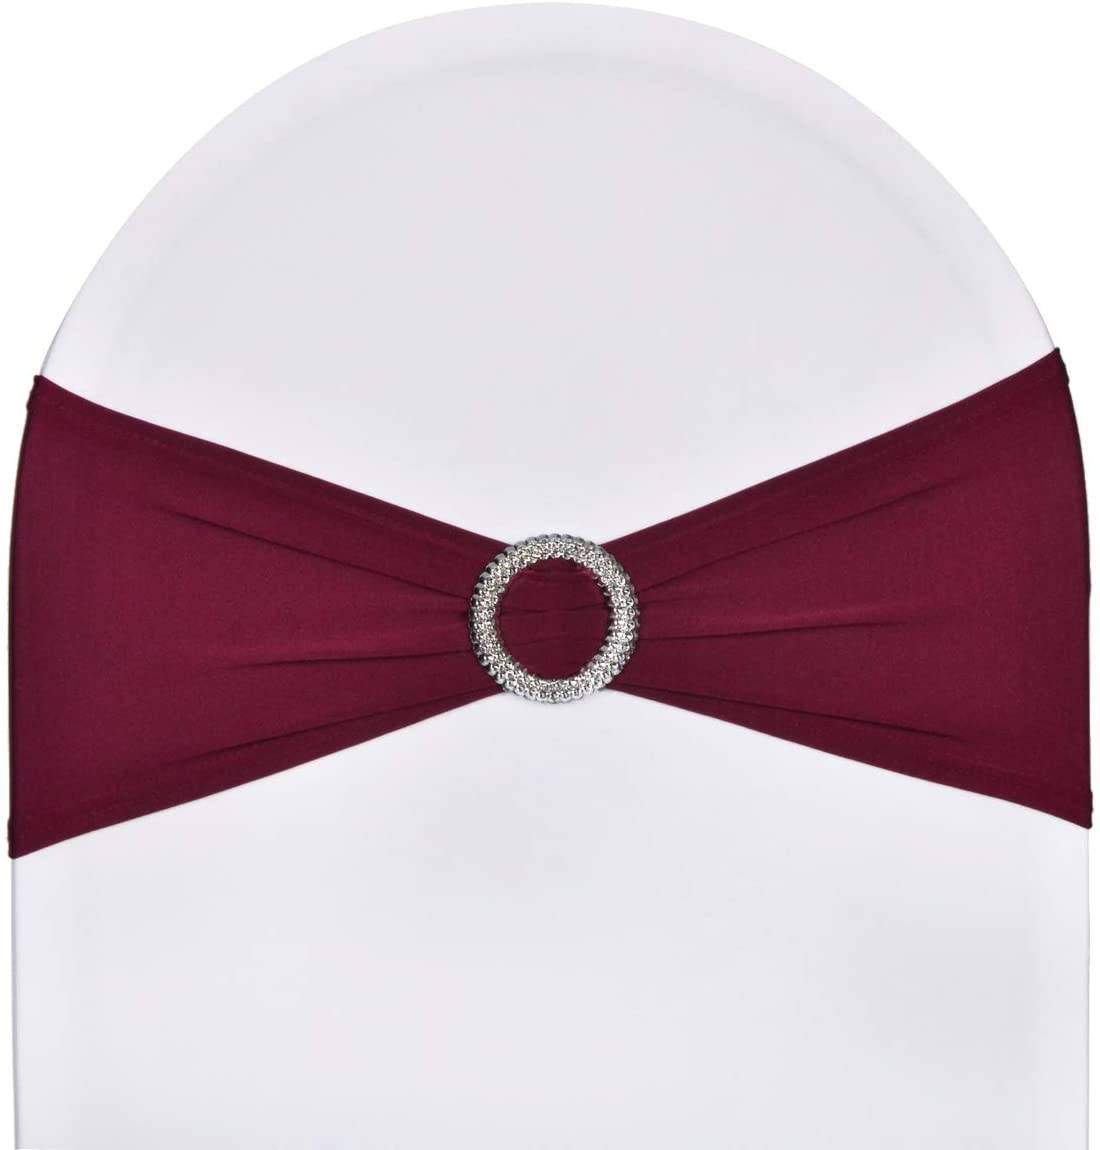 SweetEver Pack of 10 Stretch Spandex Chair Sashes for Wedding Party Banquet Decoration Elastic Bulk Chair Cover with Buckle Engagement Event Birthday Graduation Meeting Burgundy